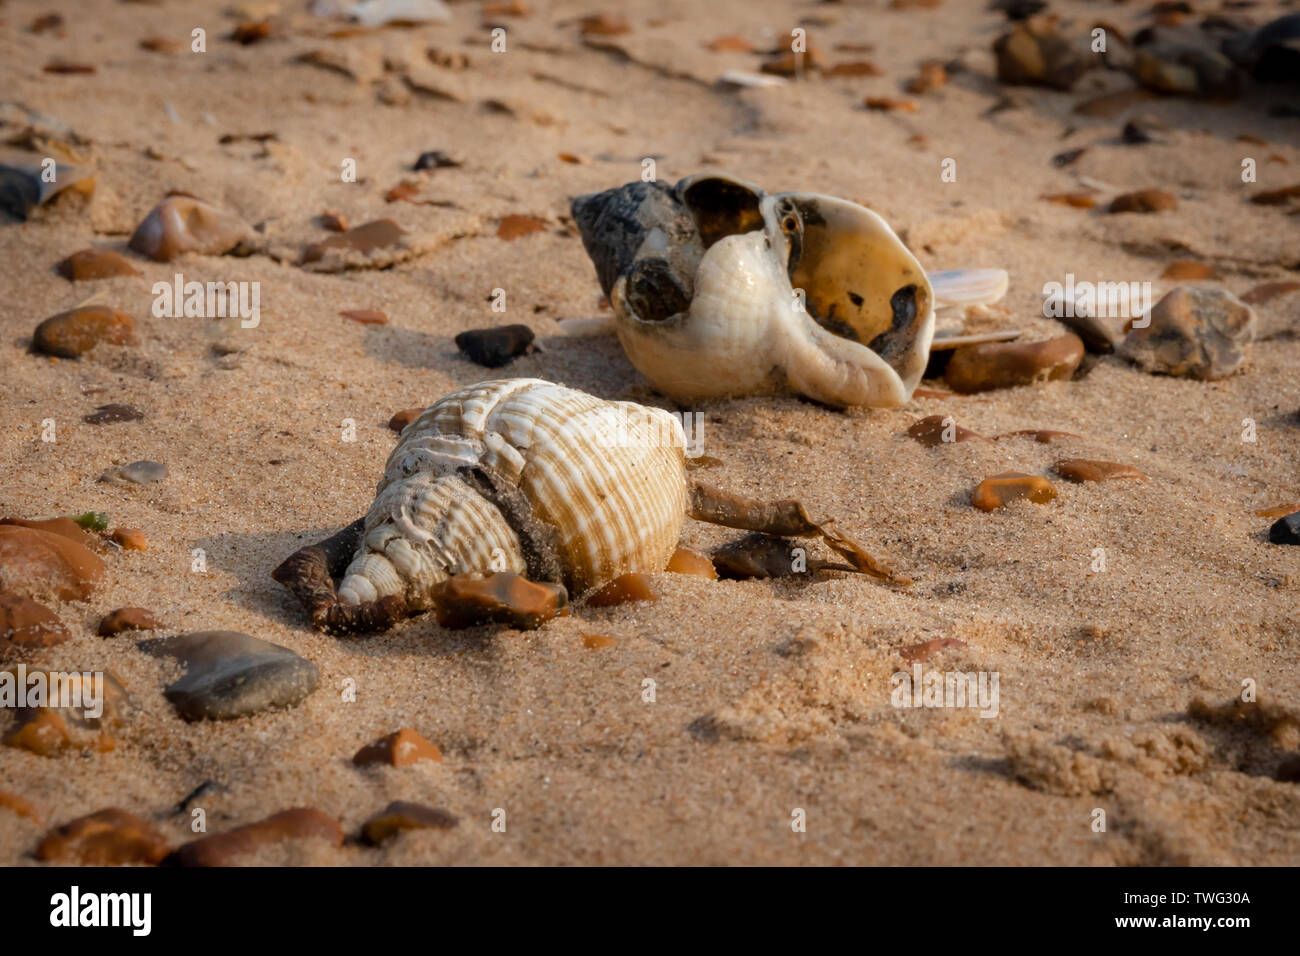 Dog whelk shells on a sandy beach surrounded by pebbles - Stock Image